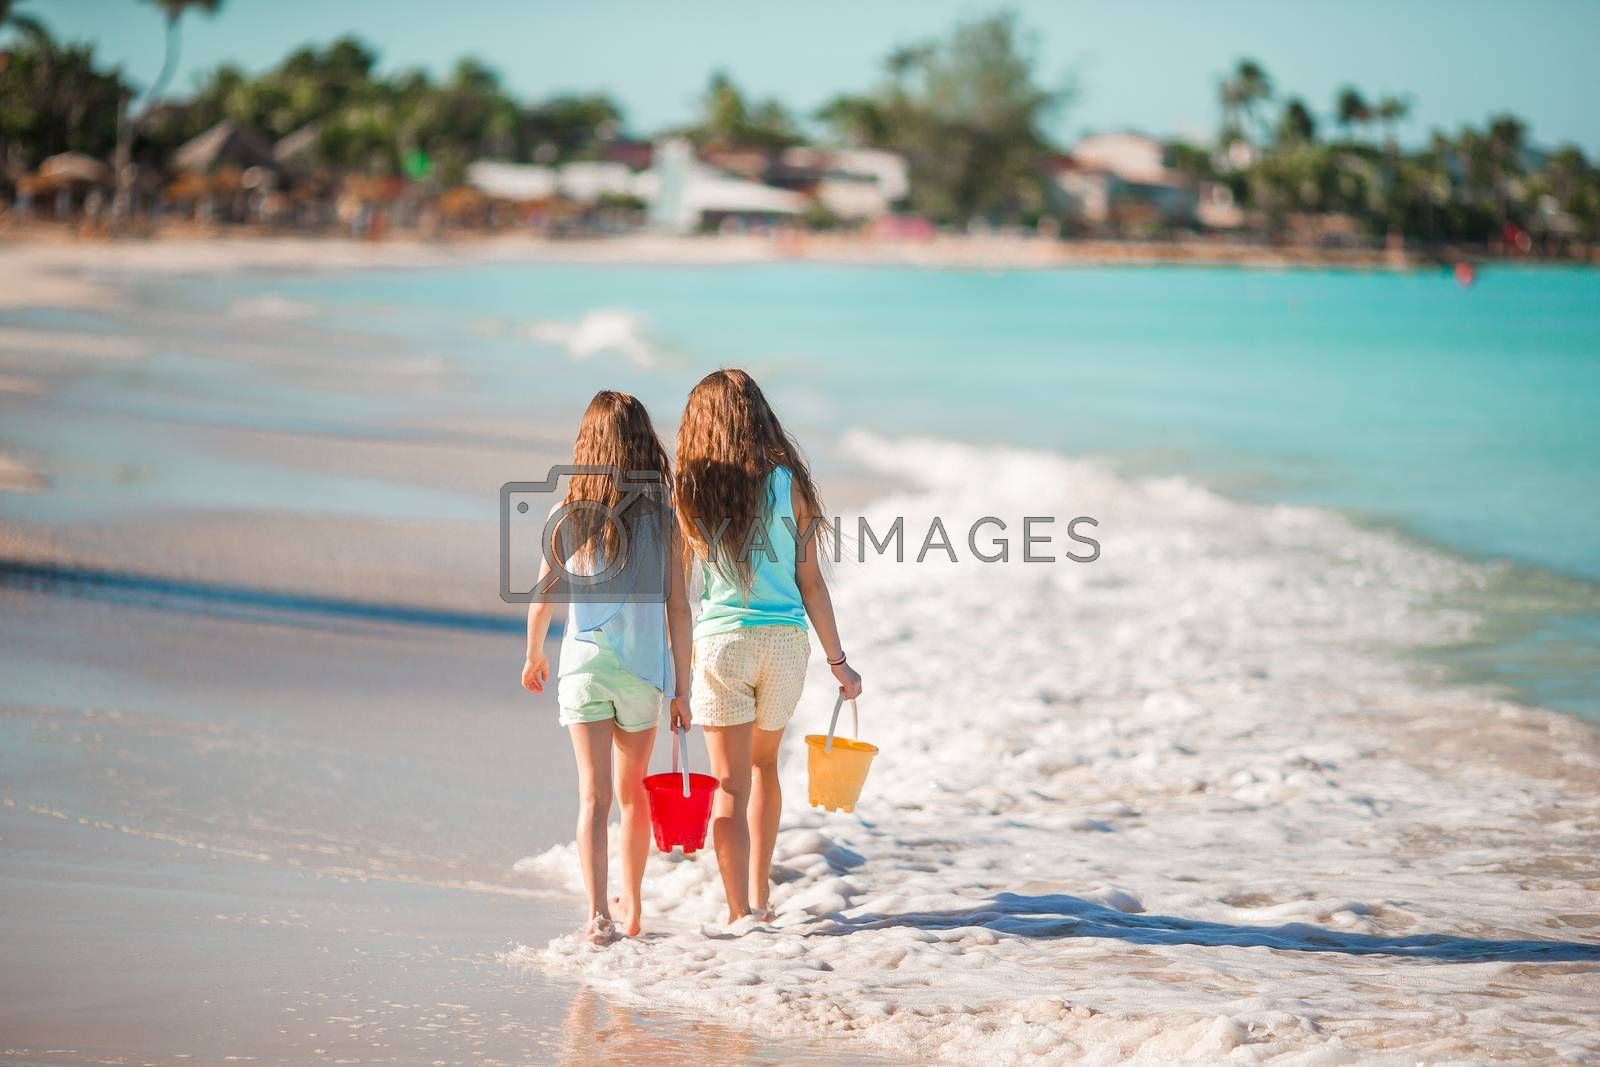 Adorable little girls playing with sand on the beach. Back view of kids walking along the beach